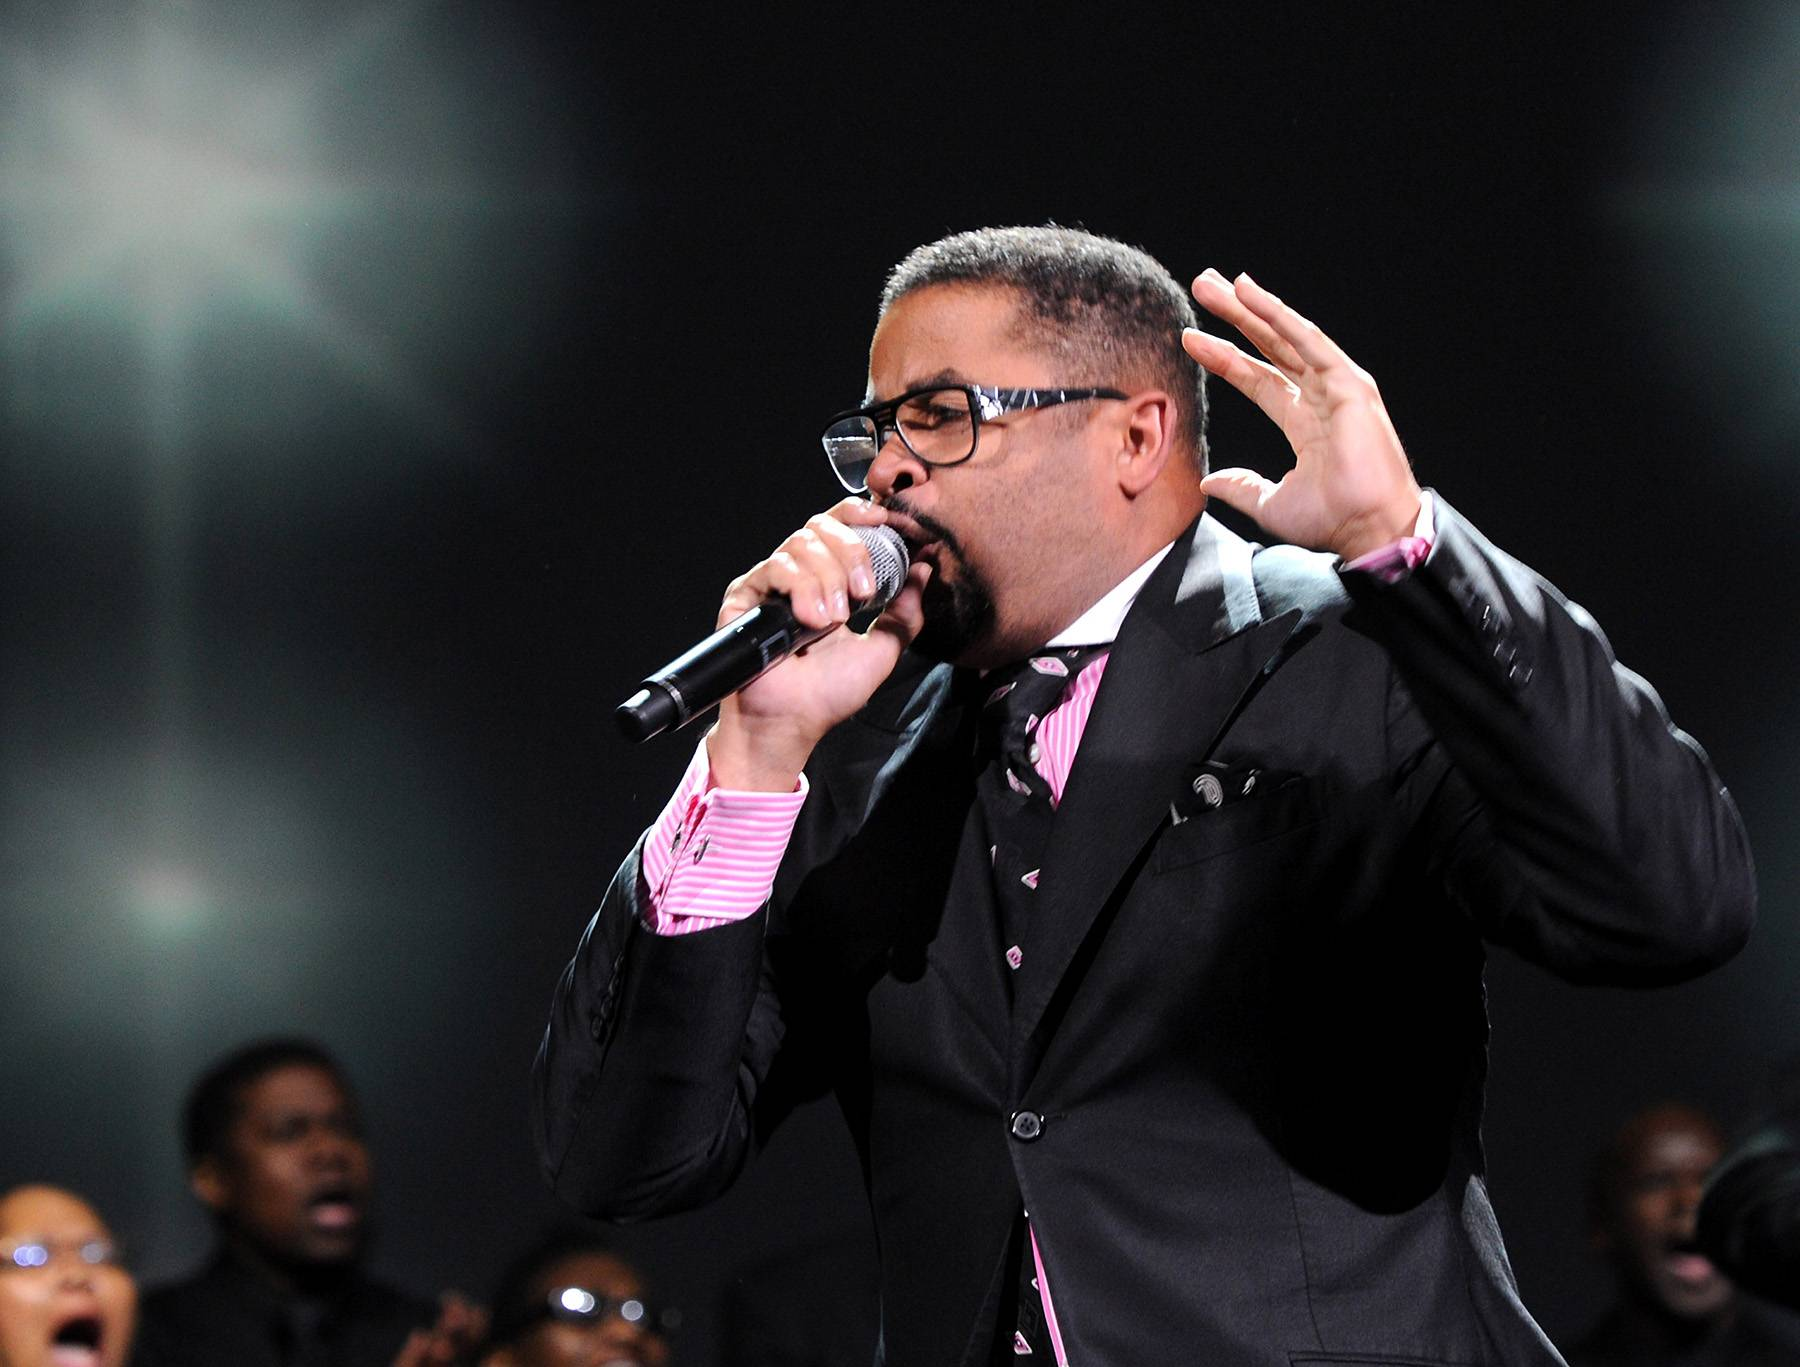 Memoirs of a Worshipper - Gospel singer Byron Cage opens up our hearts to look unto the Lord and give Him an exceptional praise. (Photo: Rick Diamond/Getty Images for Verizon)